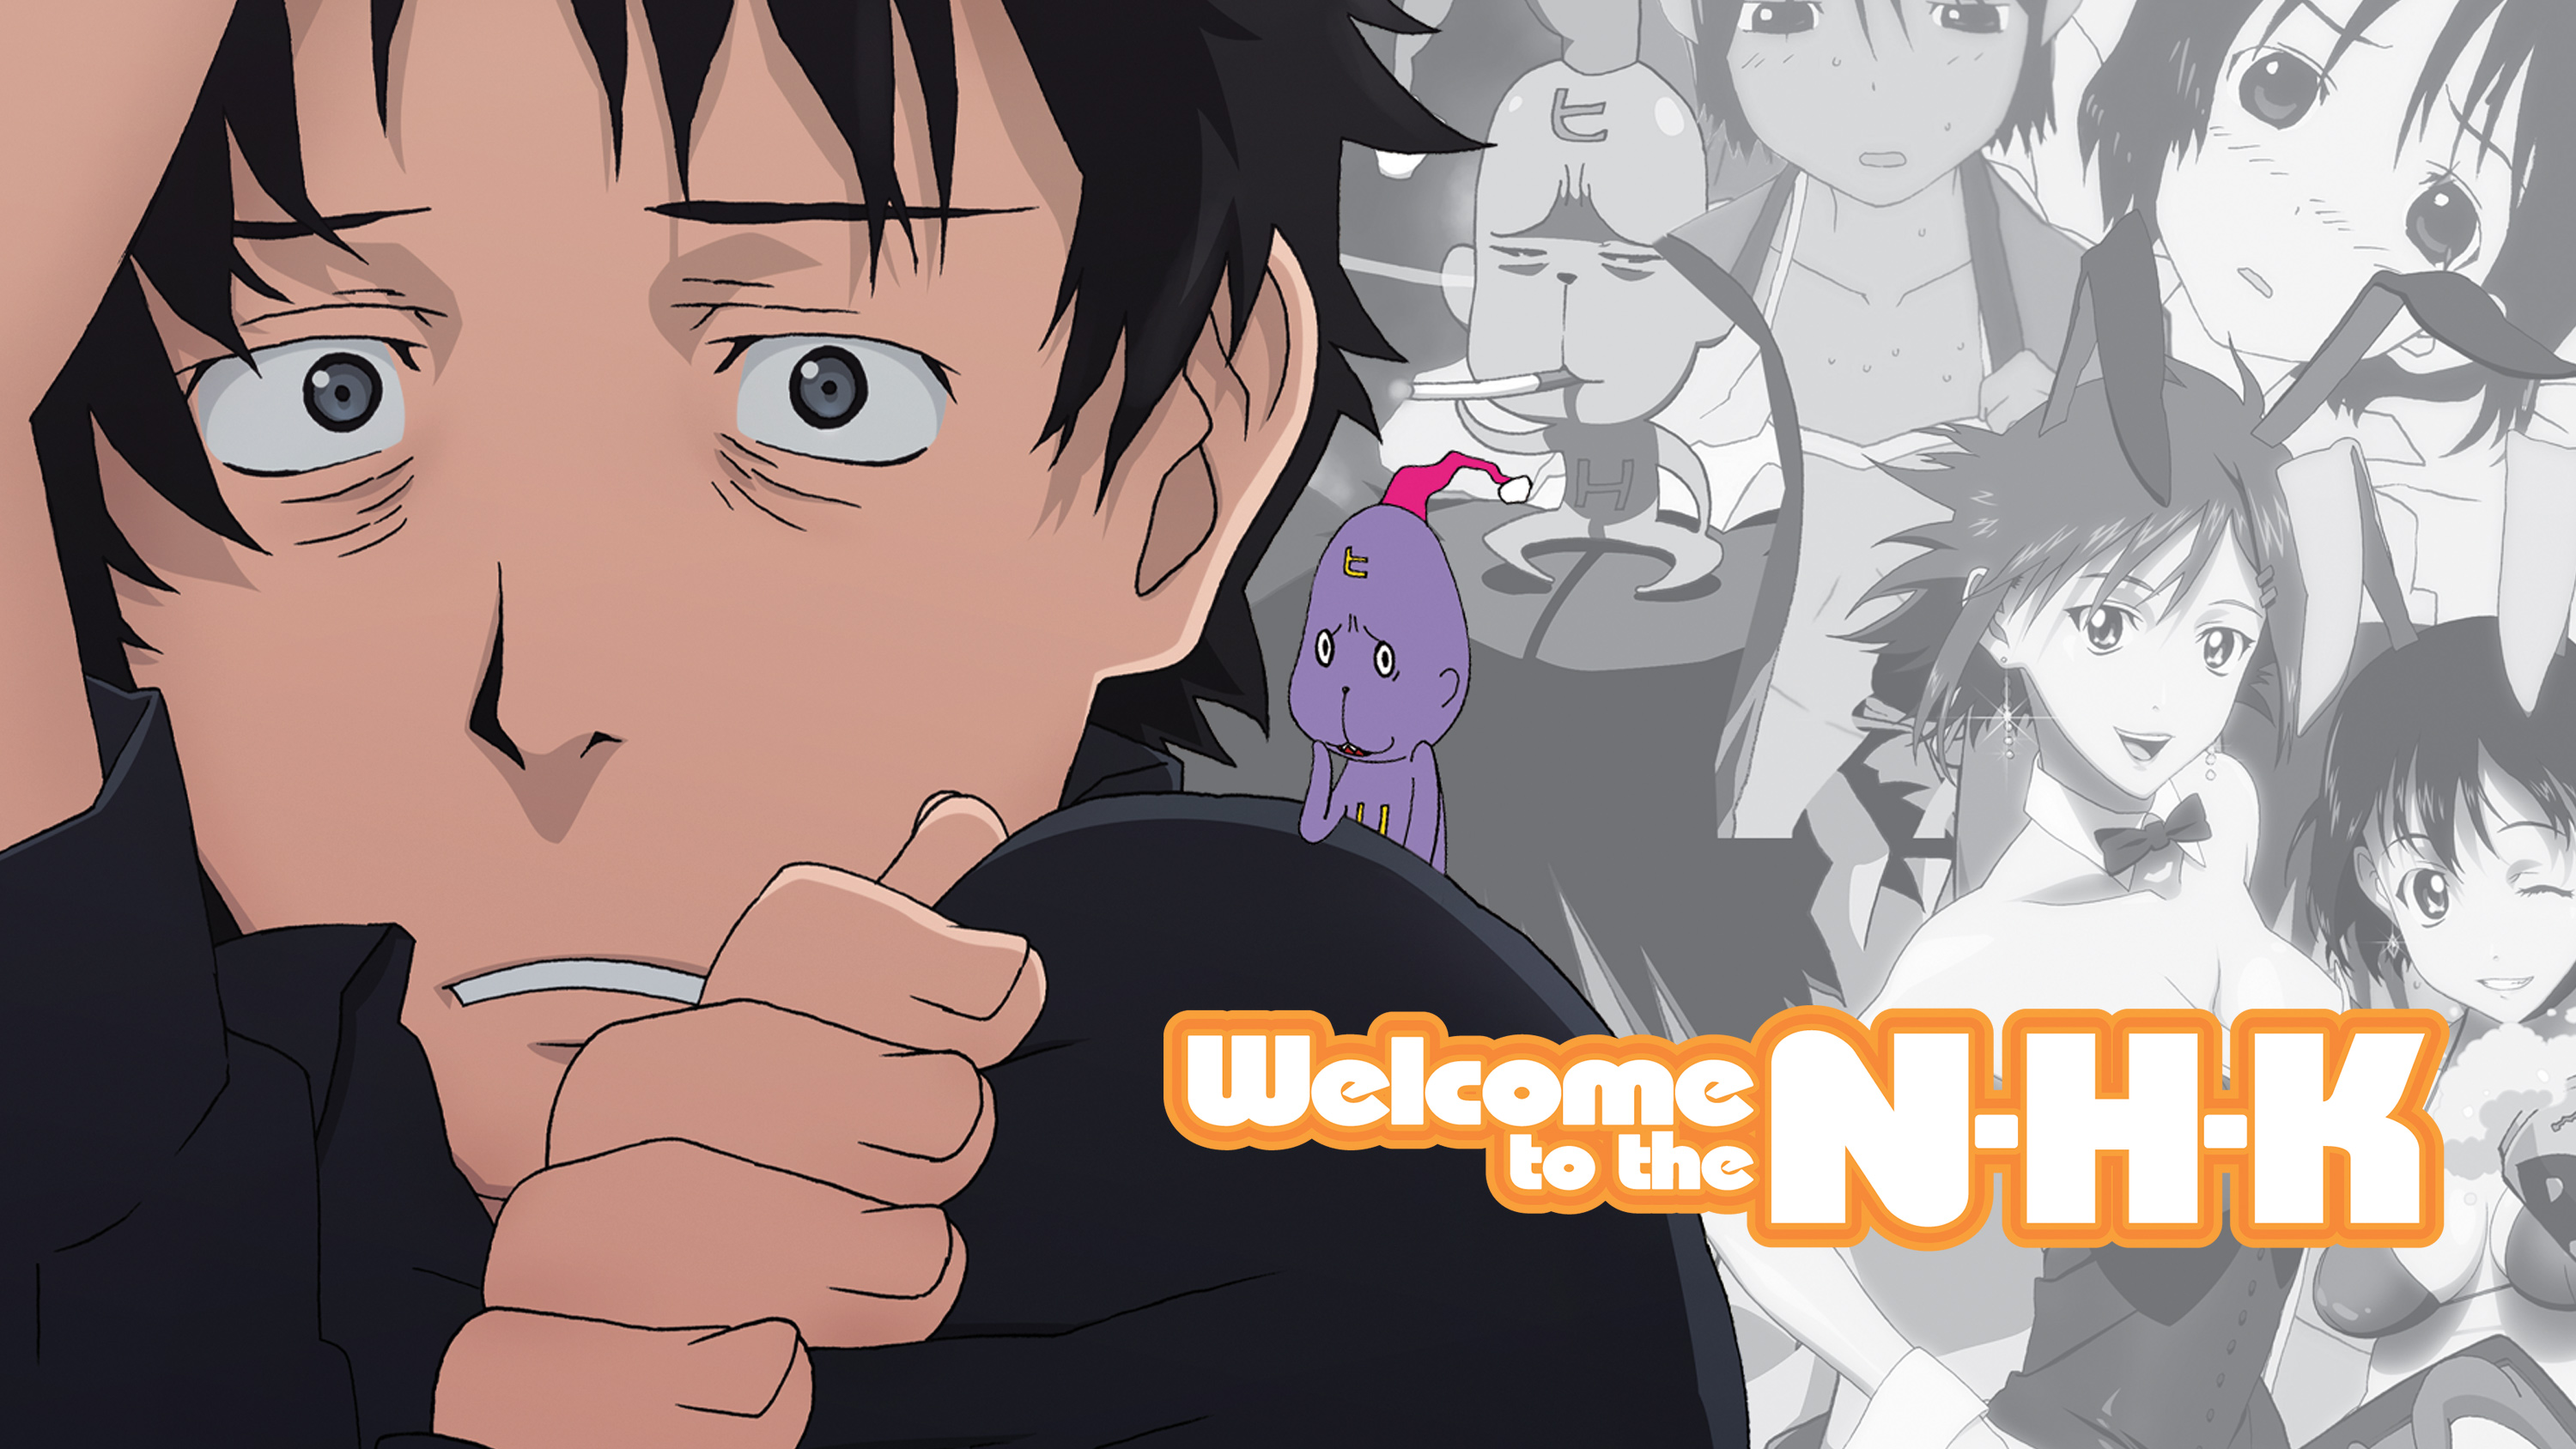 Best 2006 anime welcome to the nhk